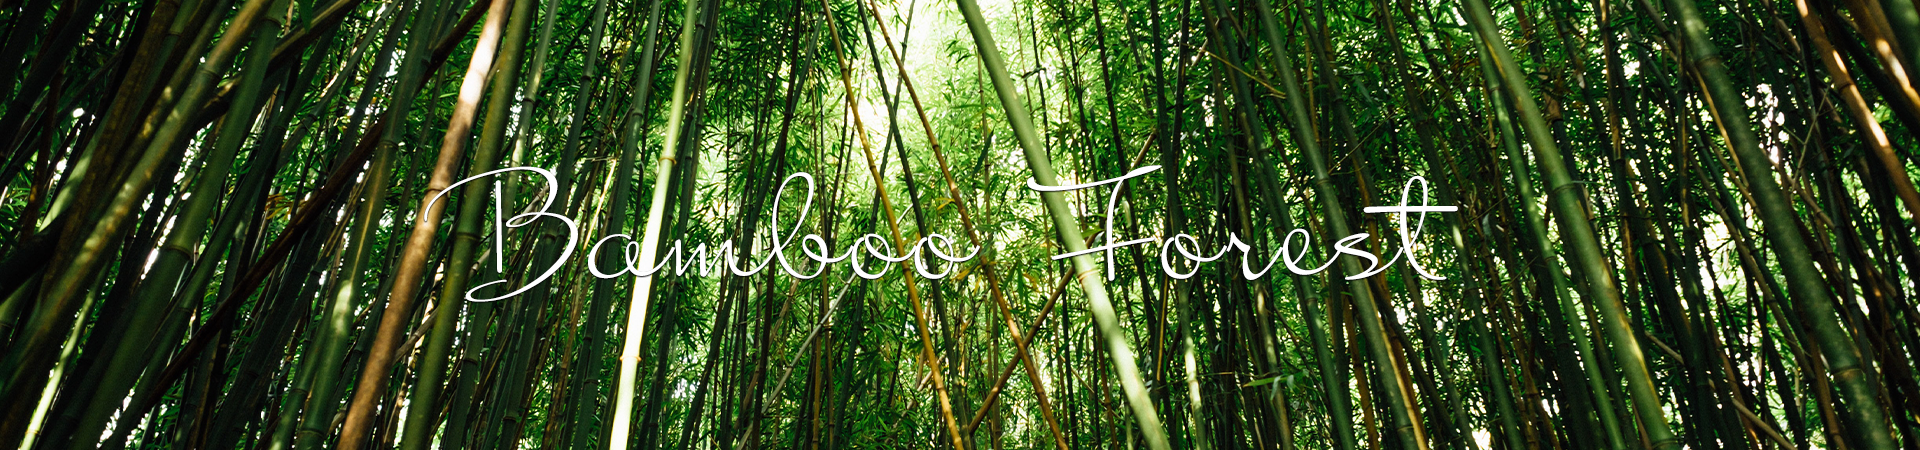 Bamboo Forest in Hawaiʻi